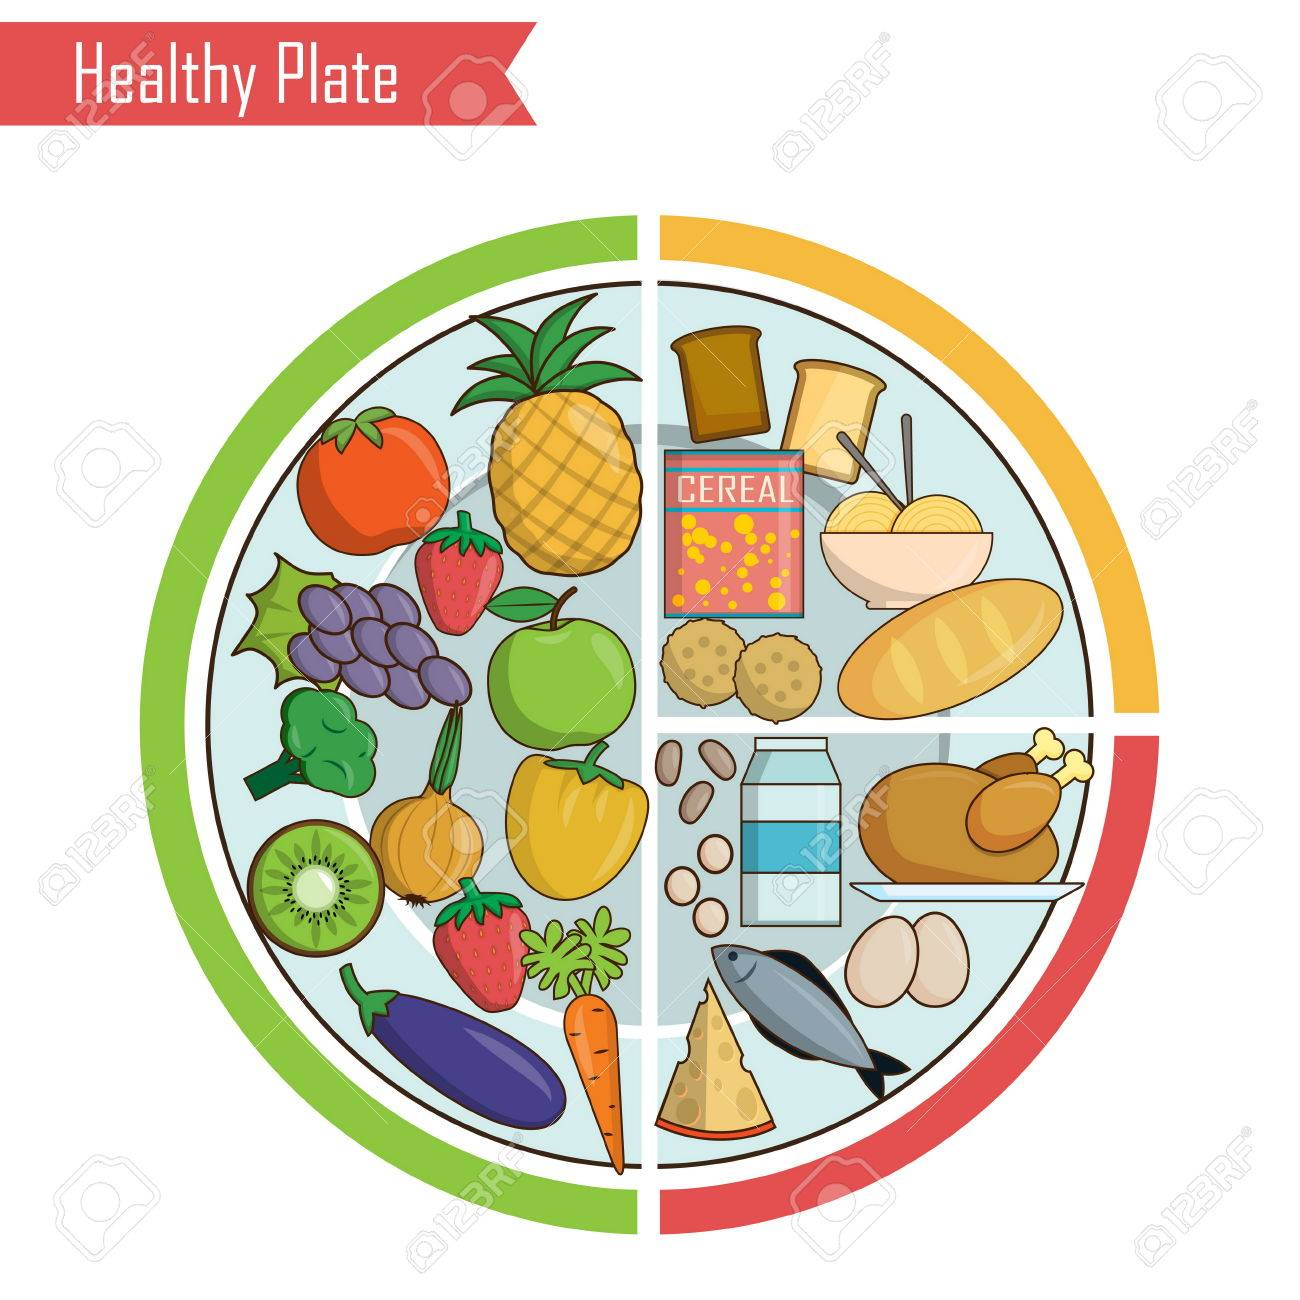 Image result for Healthy plate